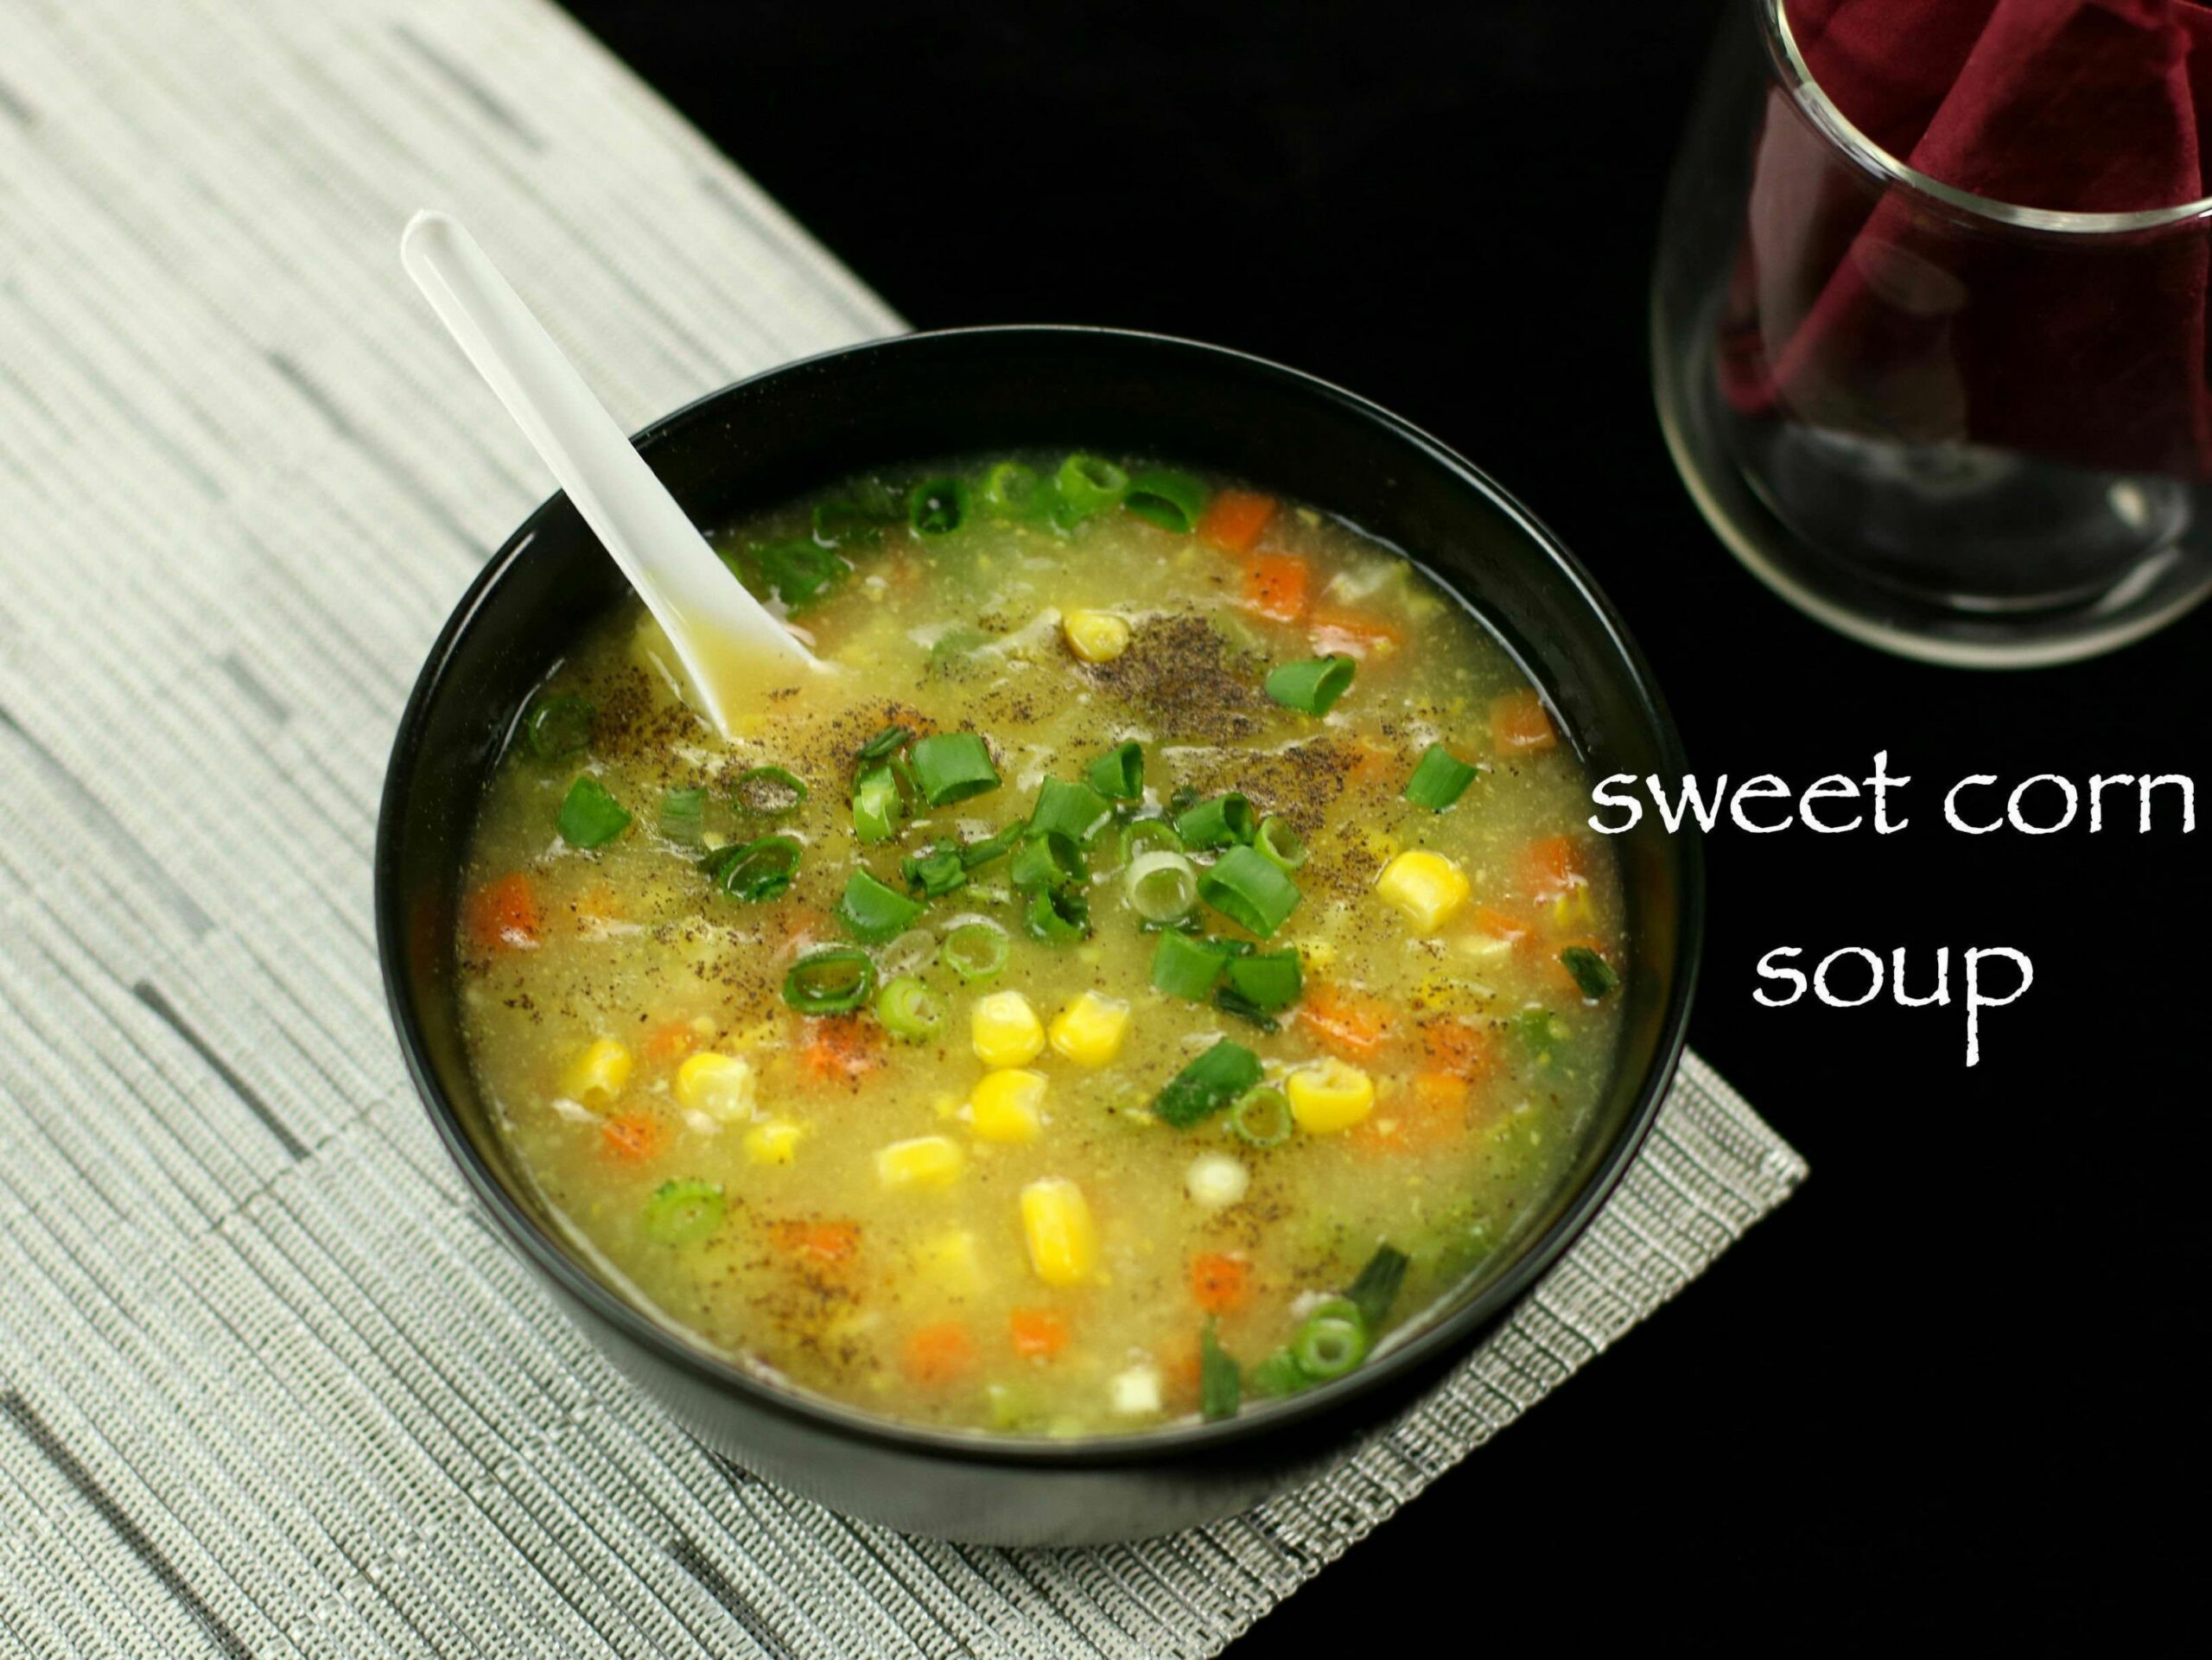 Sweet corn soup recipe | sweet corn veg soup | chinese sweet corn soup